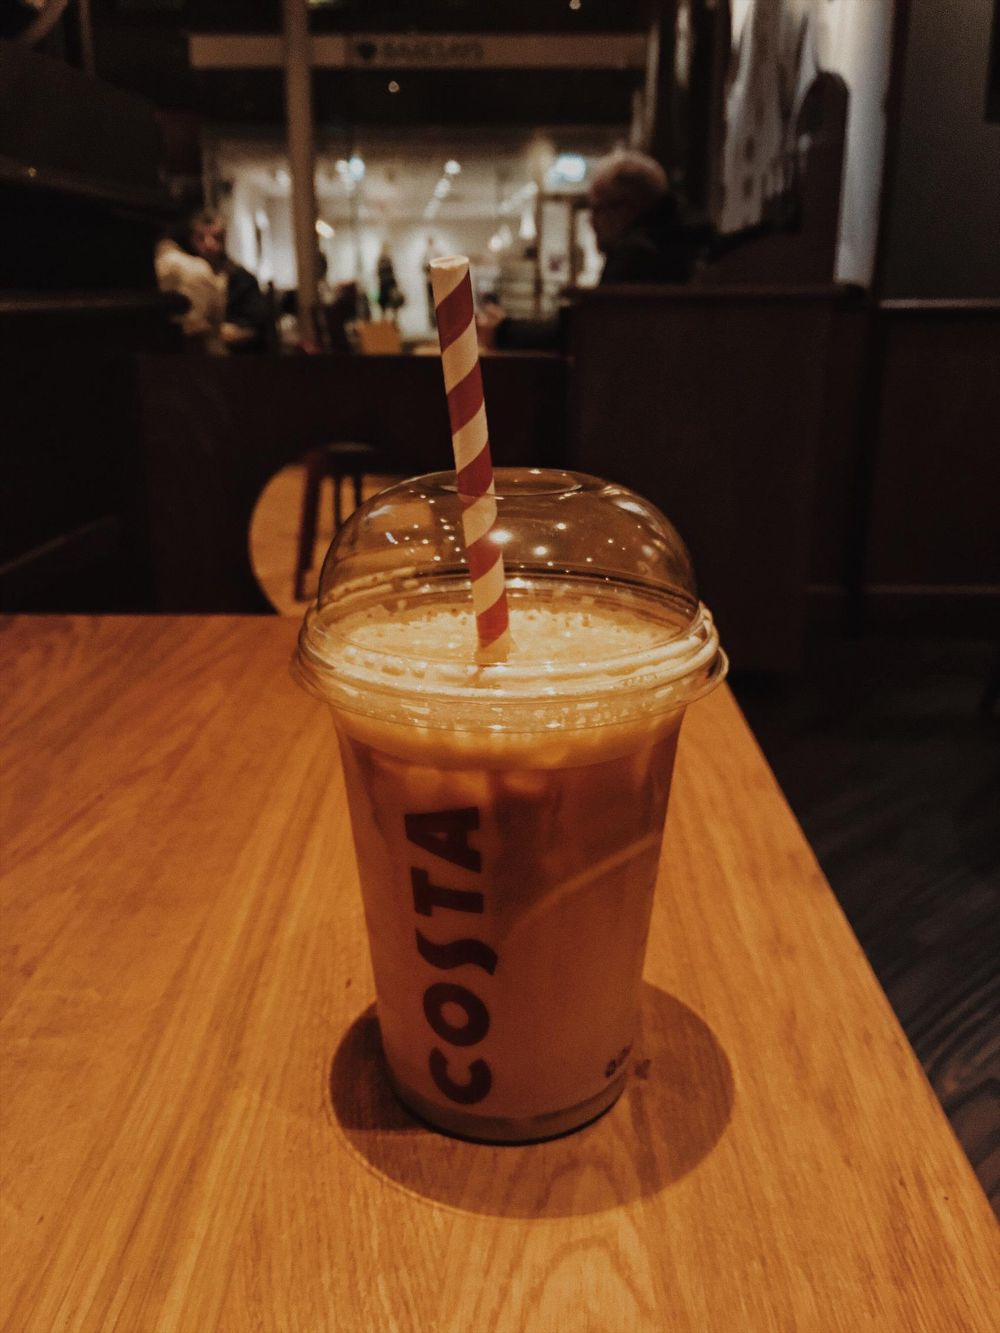 Another Costa - image 1 - student project